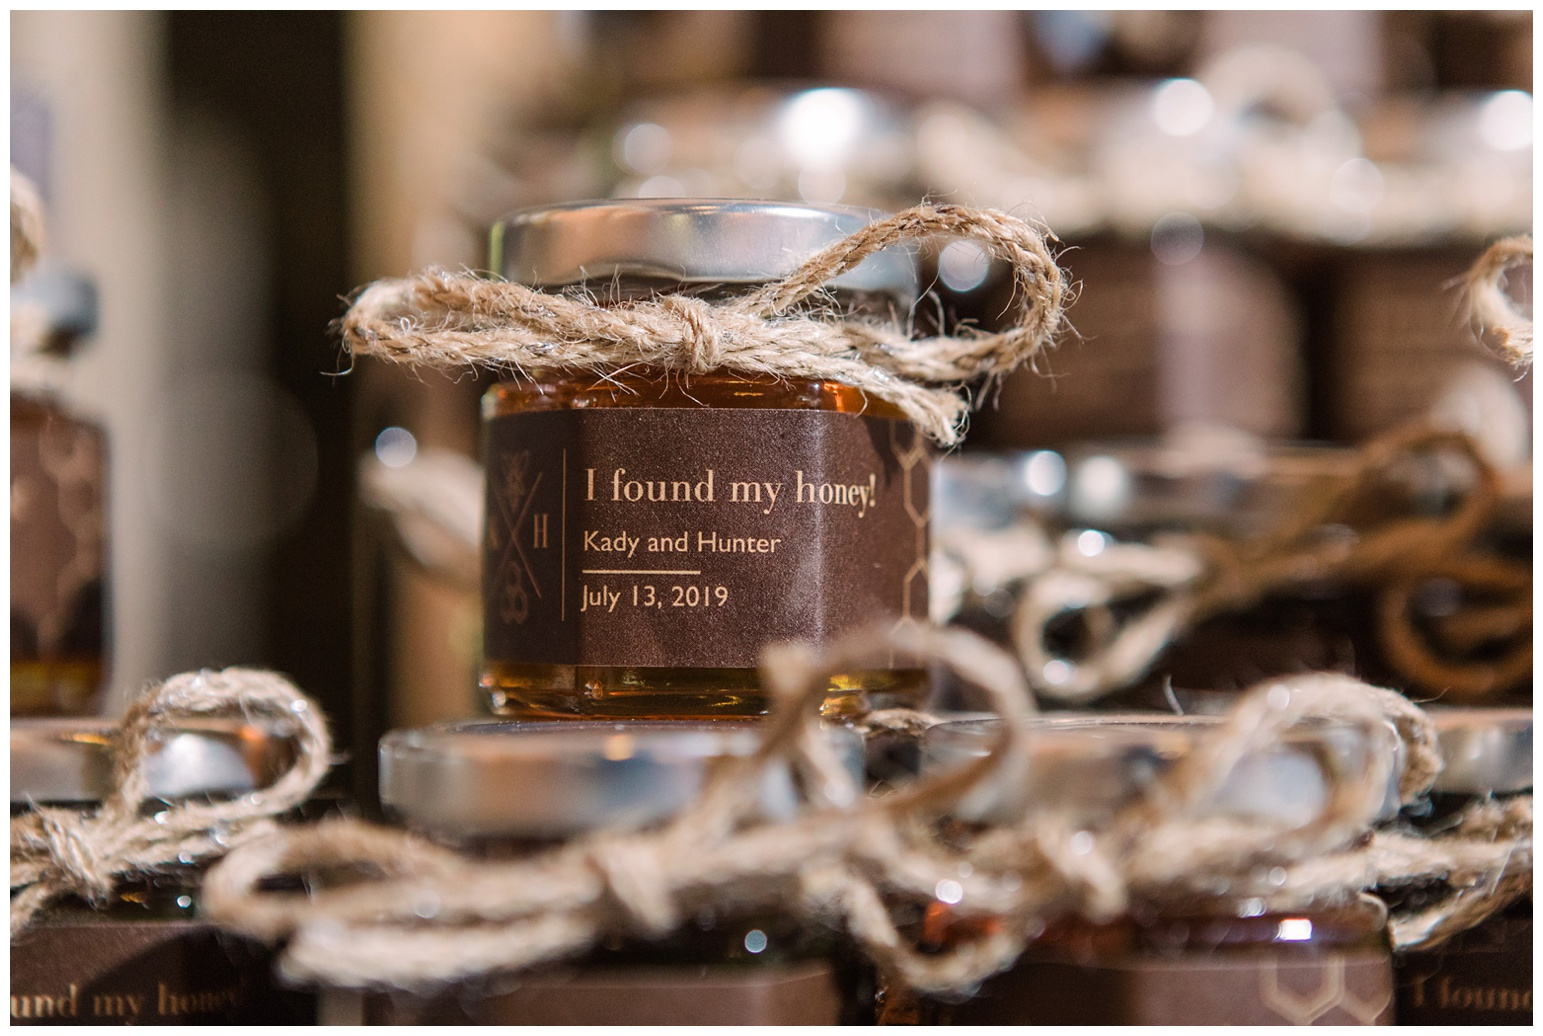 honey pot - jars - wedding favors - i found my honey - rustic wedding decor - ideas - inspiration - real wedding - now featured on My Eastern Shore Wedding